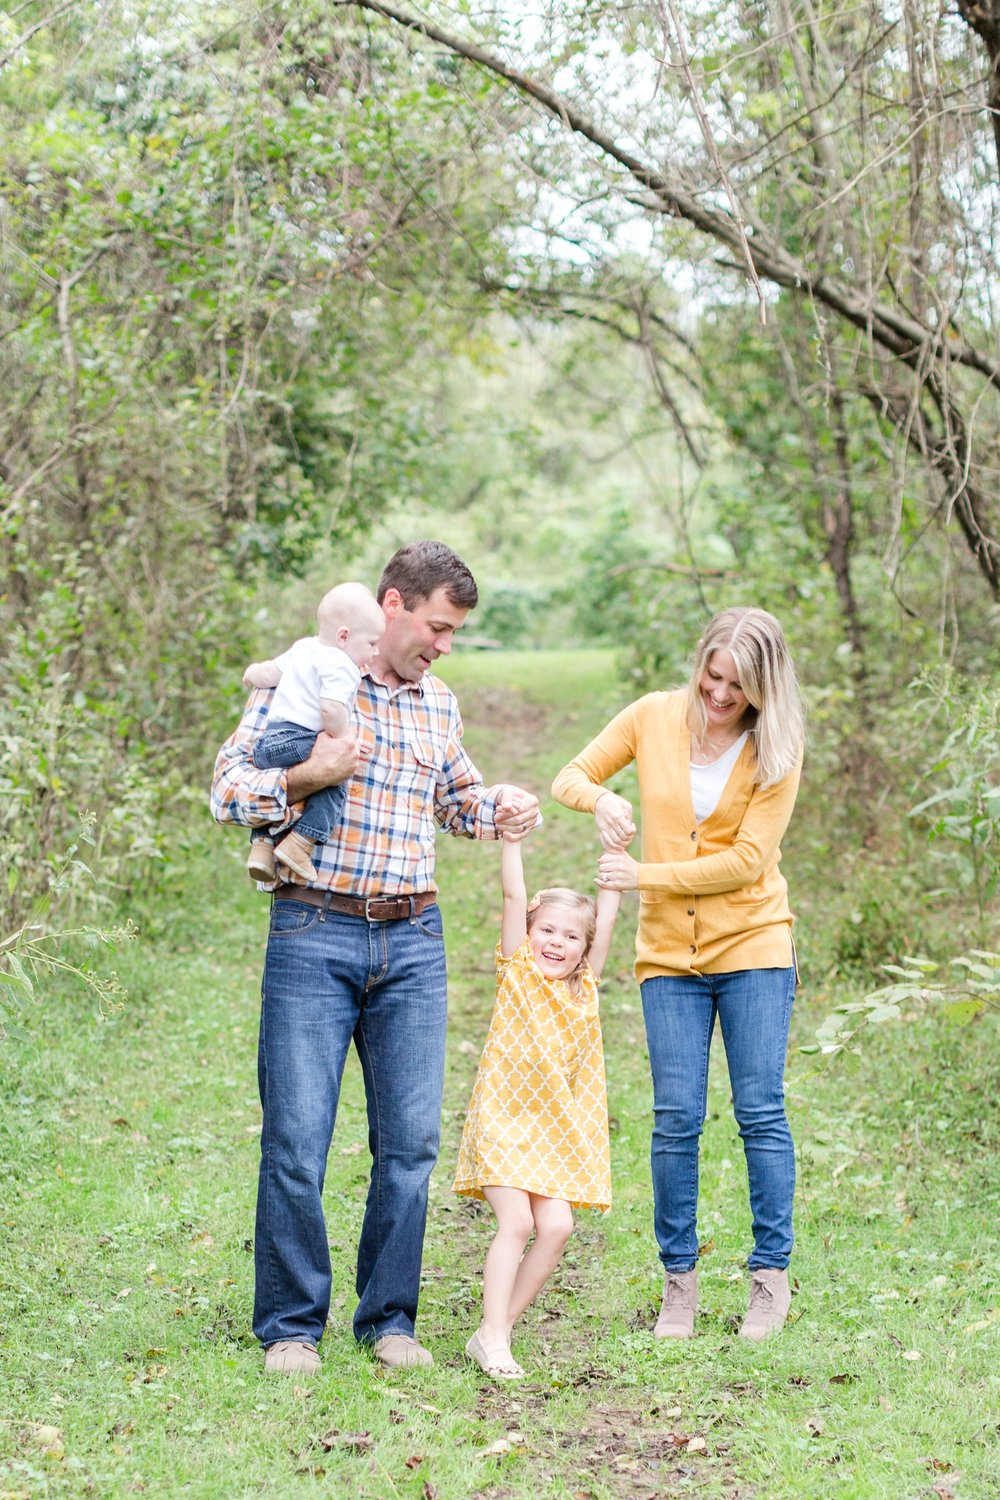 Ryan Family 2018-94_Cromwell-Valley-Park-Towson-Maryland-Family-Photographer-anna-grace-photography-photo.jpg